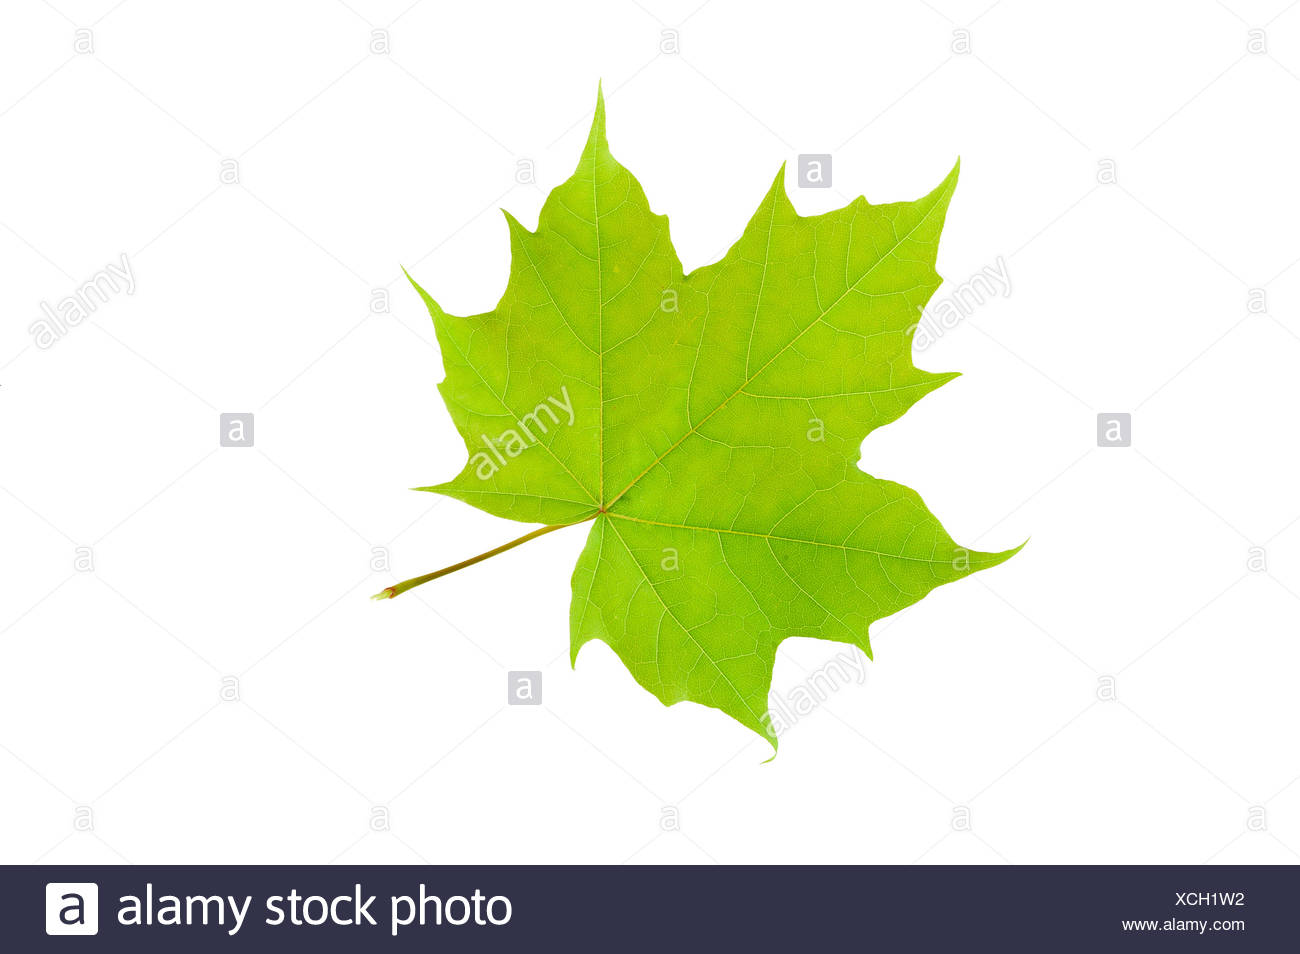 Close-up of a green maple leaf over white background - Stock Image